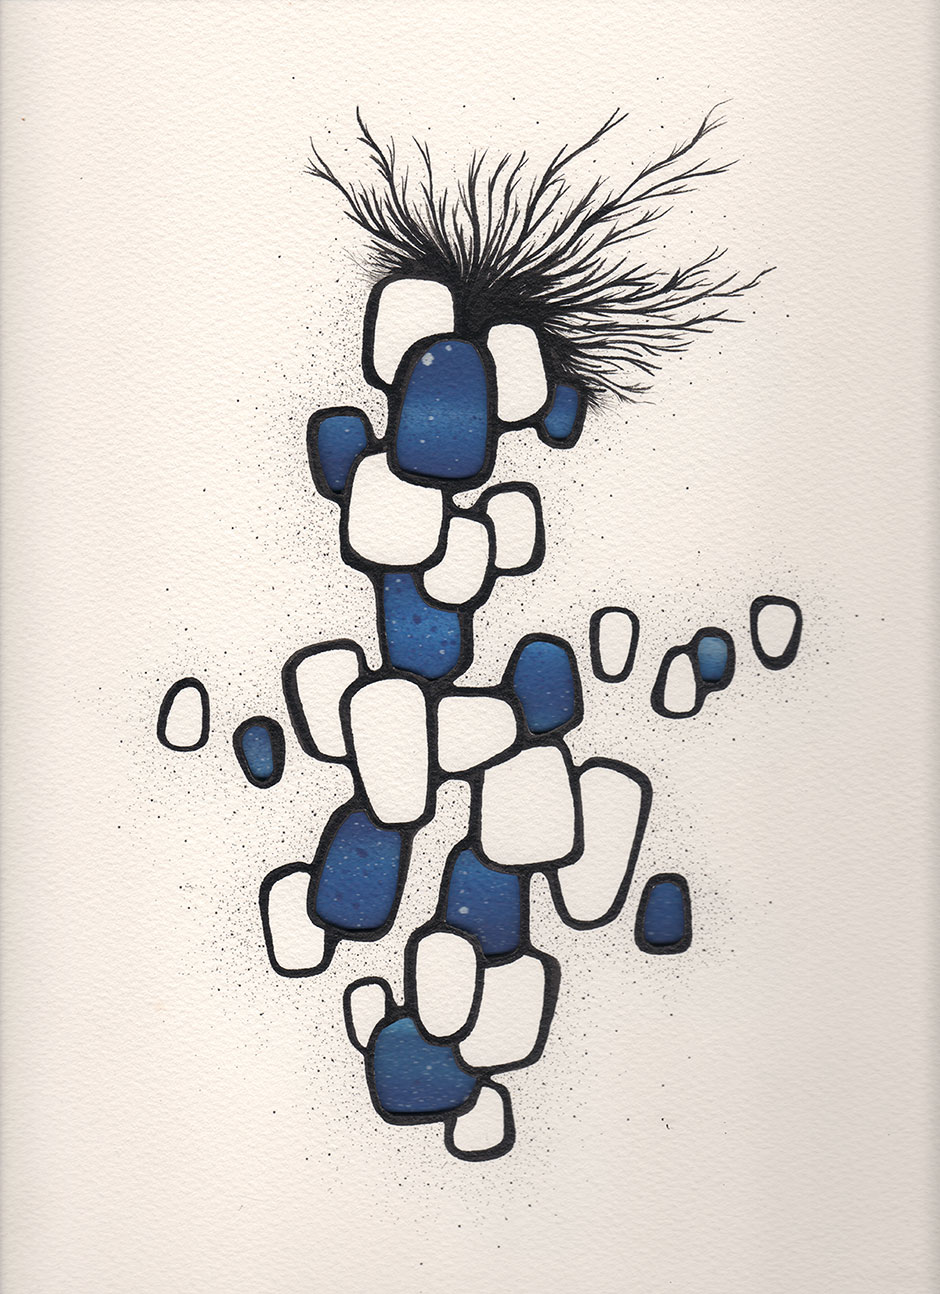 "Alex Diamond: Featherweight Blue | Drawing on cut and layered paper 2015, ink and spray paint on Saunders Waterford paper (St. Cuthberts Mill) 300g/m (140lb), 31 x 23 cm (12"" x 9"")"